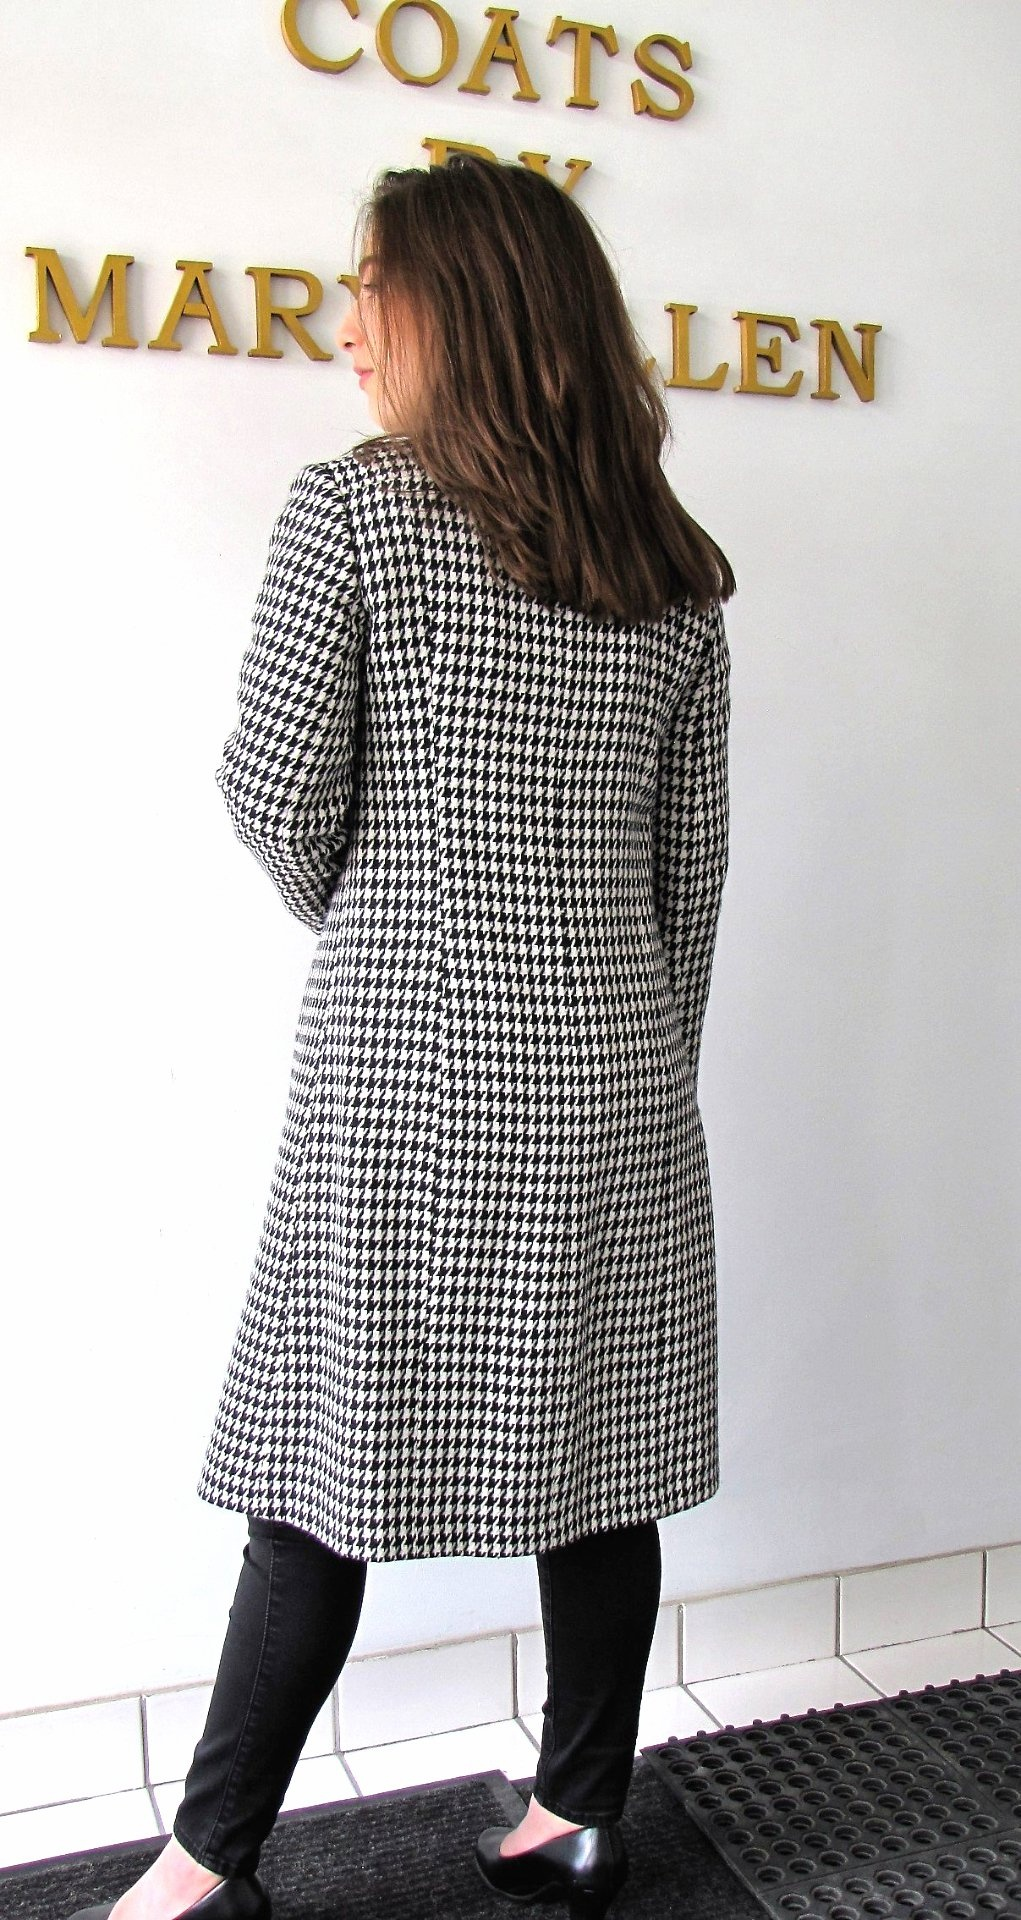 Style #B6385-17 - Black/White Houndstooth 100% Pure Virgin Wool. Back View.